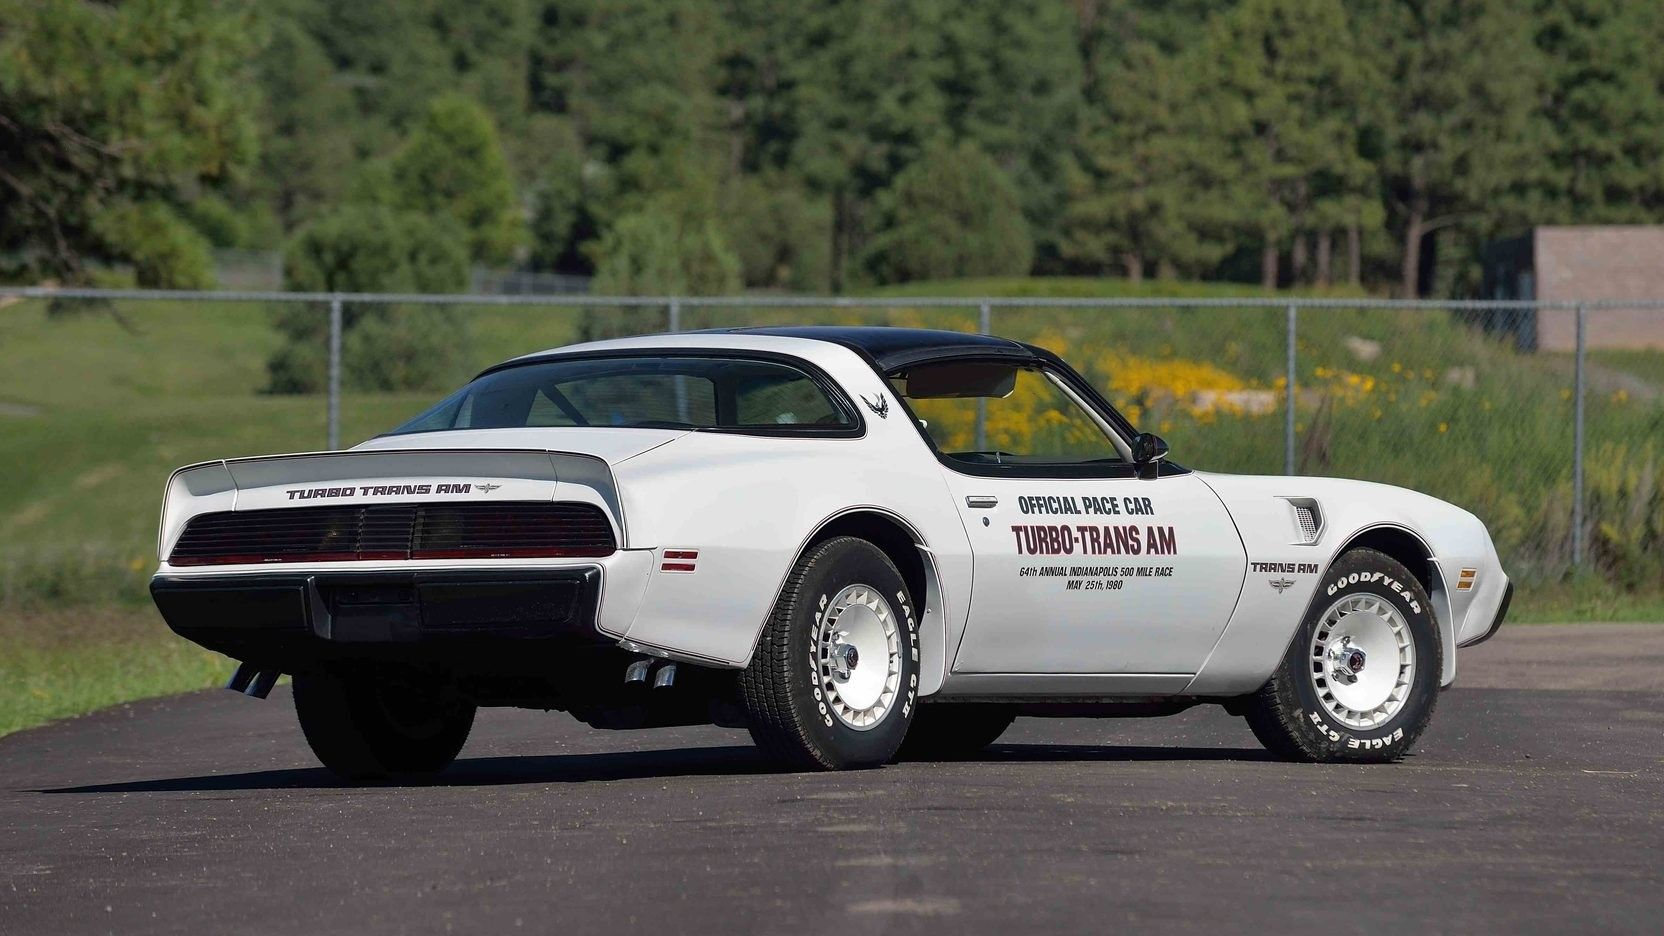 1980 Pontiac Firebird-ultimate insult to the Firebird, Pontiac dropped its  400 V8 and installed a new Turbo-charged 301 (4.9 liter) V8 as its top  engine ...